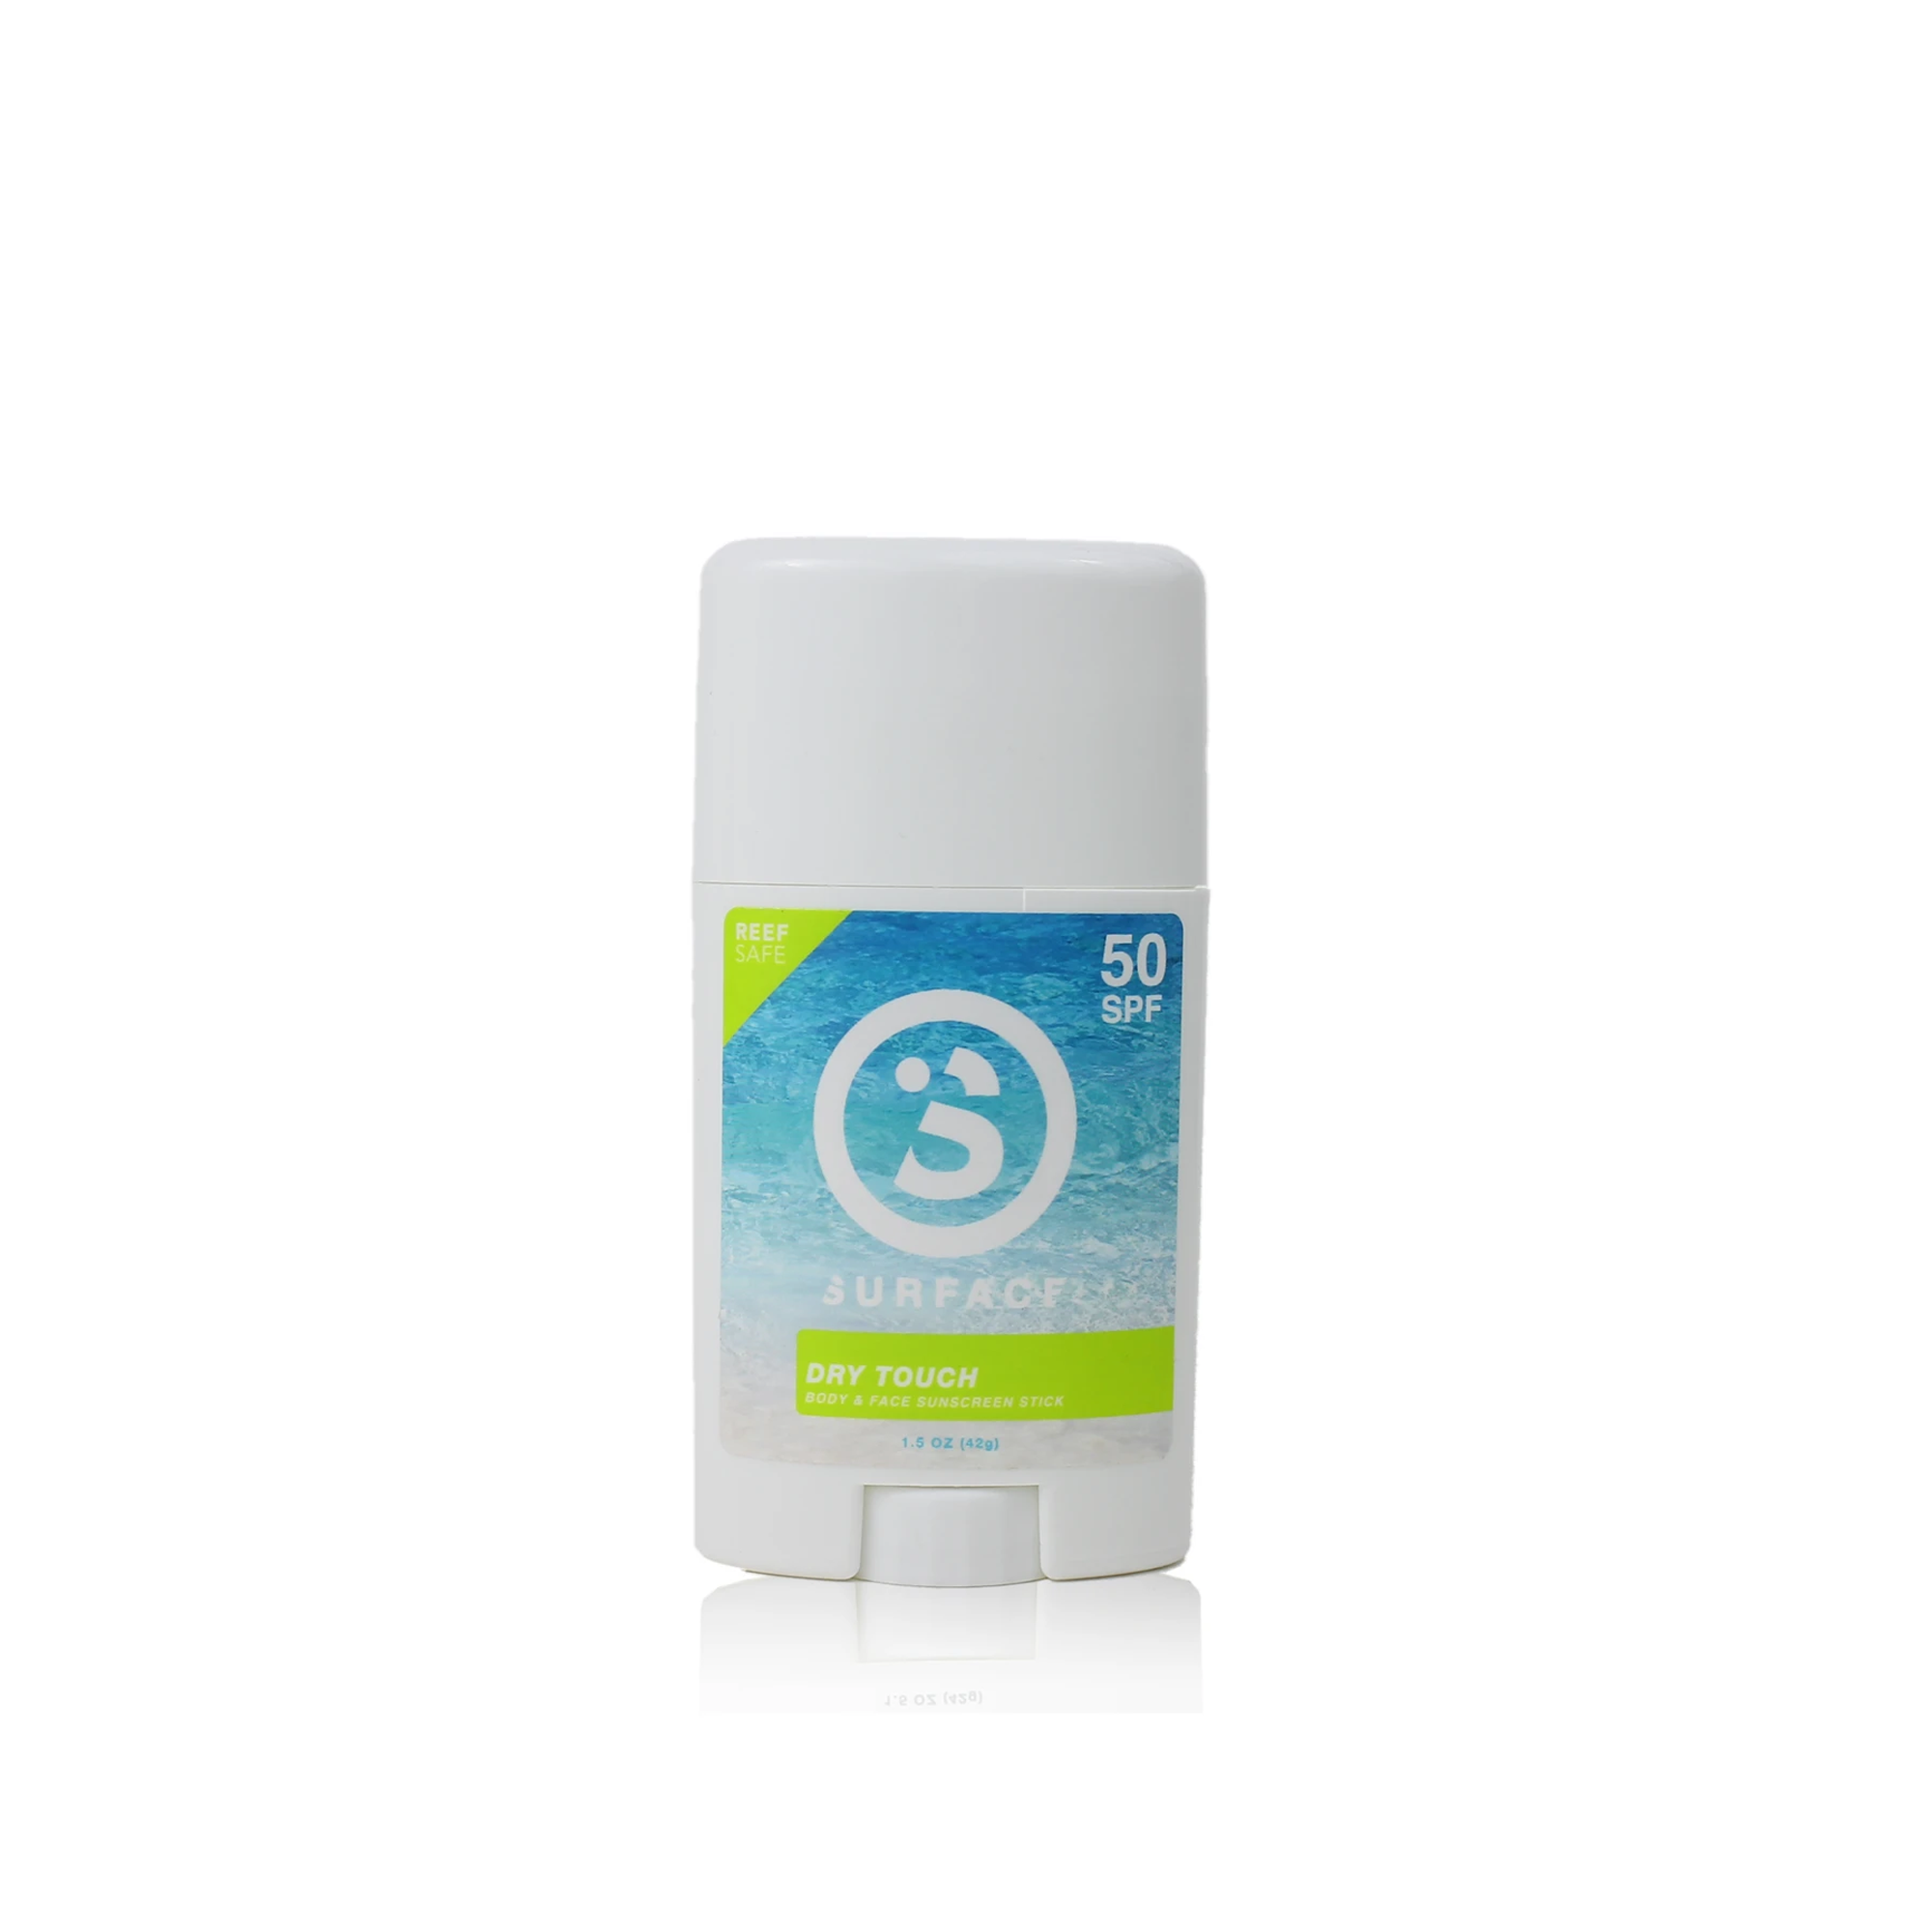 Surface Dry Touch Body/Face Sunscreen Stick - SPF50